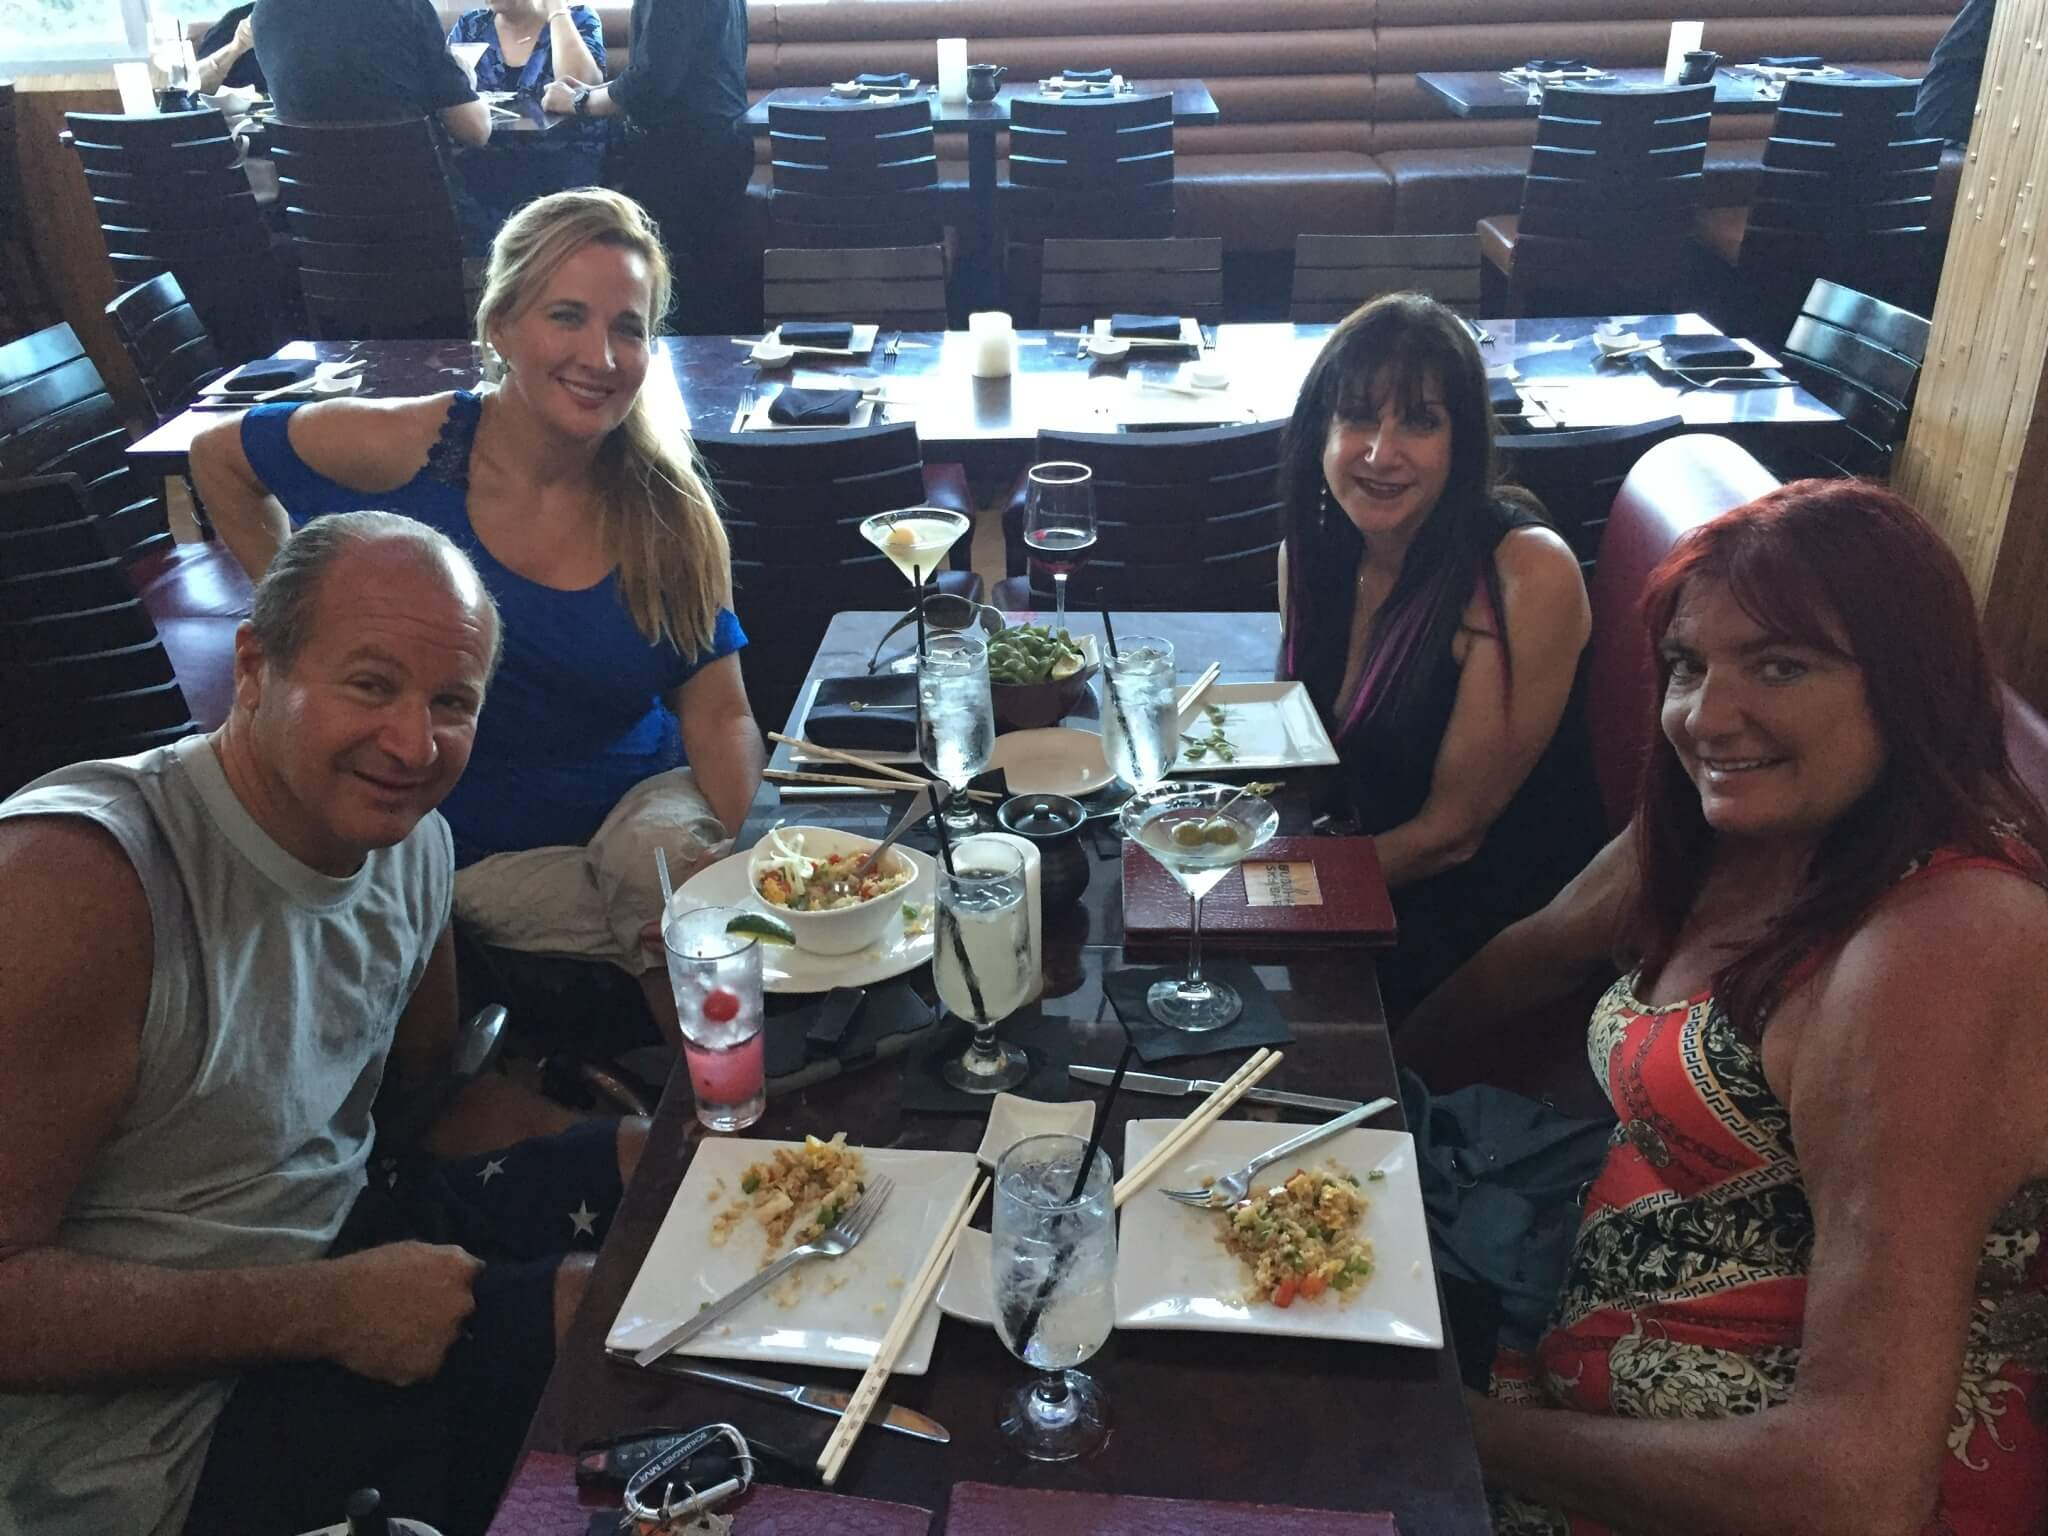 With Friends Having A Wonderful Lunch e1467098566722 - The Creative ART of Photography